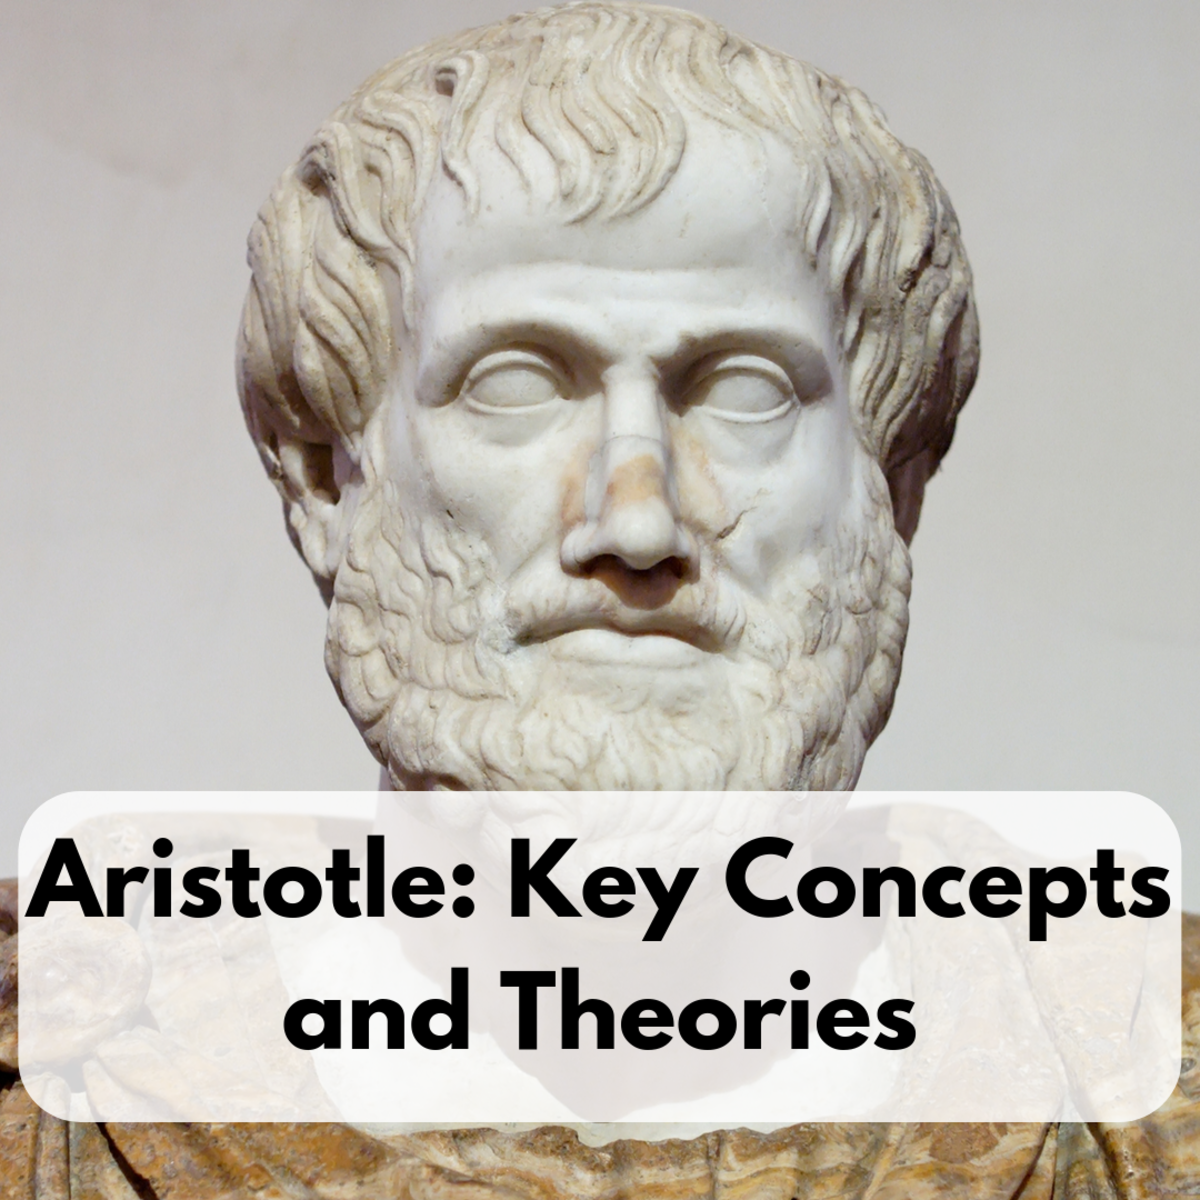 Aristotelian thought contains many critical theories and concepts that shaped western ethics and philosophy.